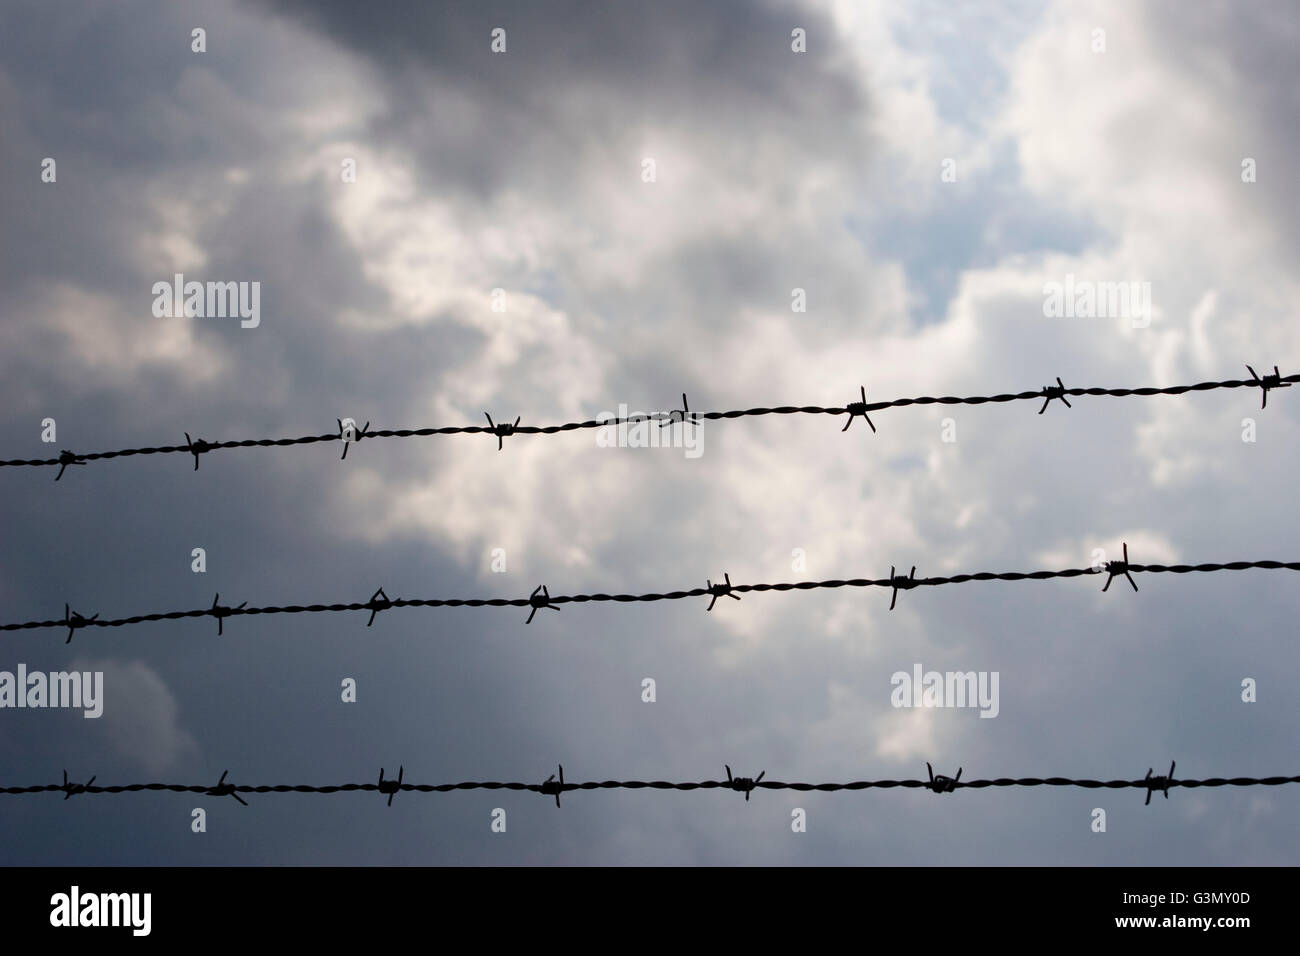 Barbed wire and storm clouds - Stock Image